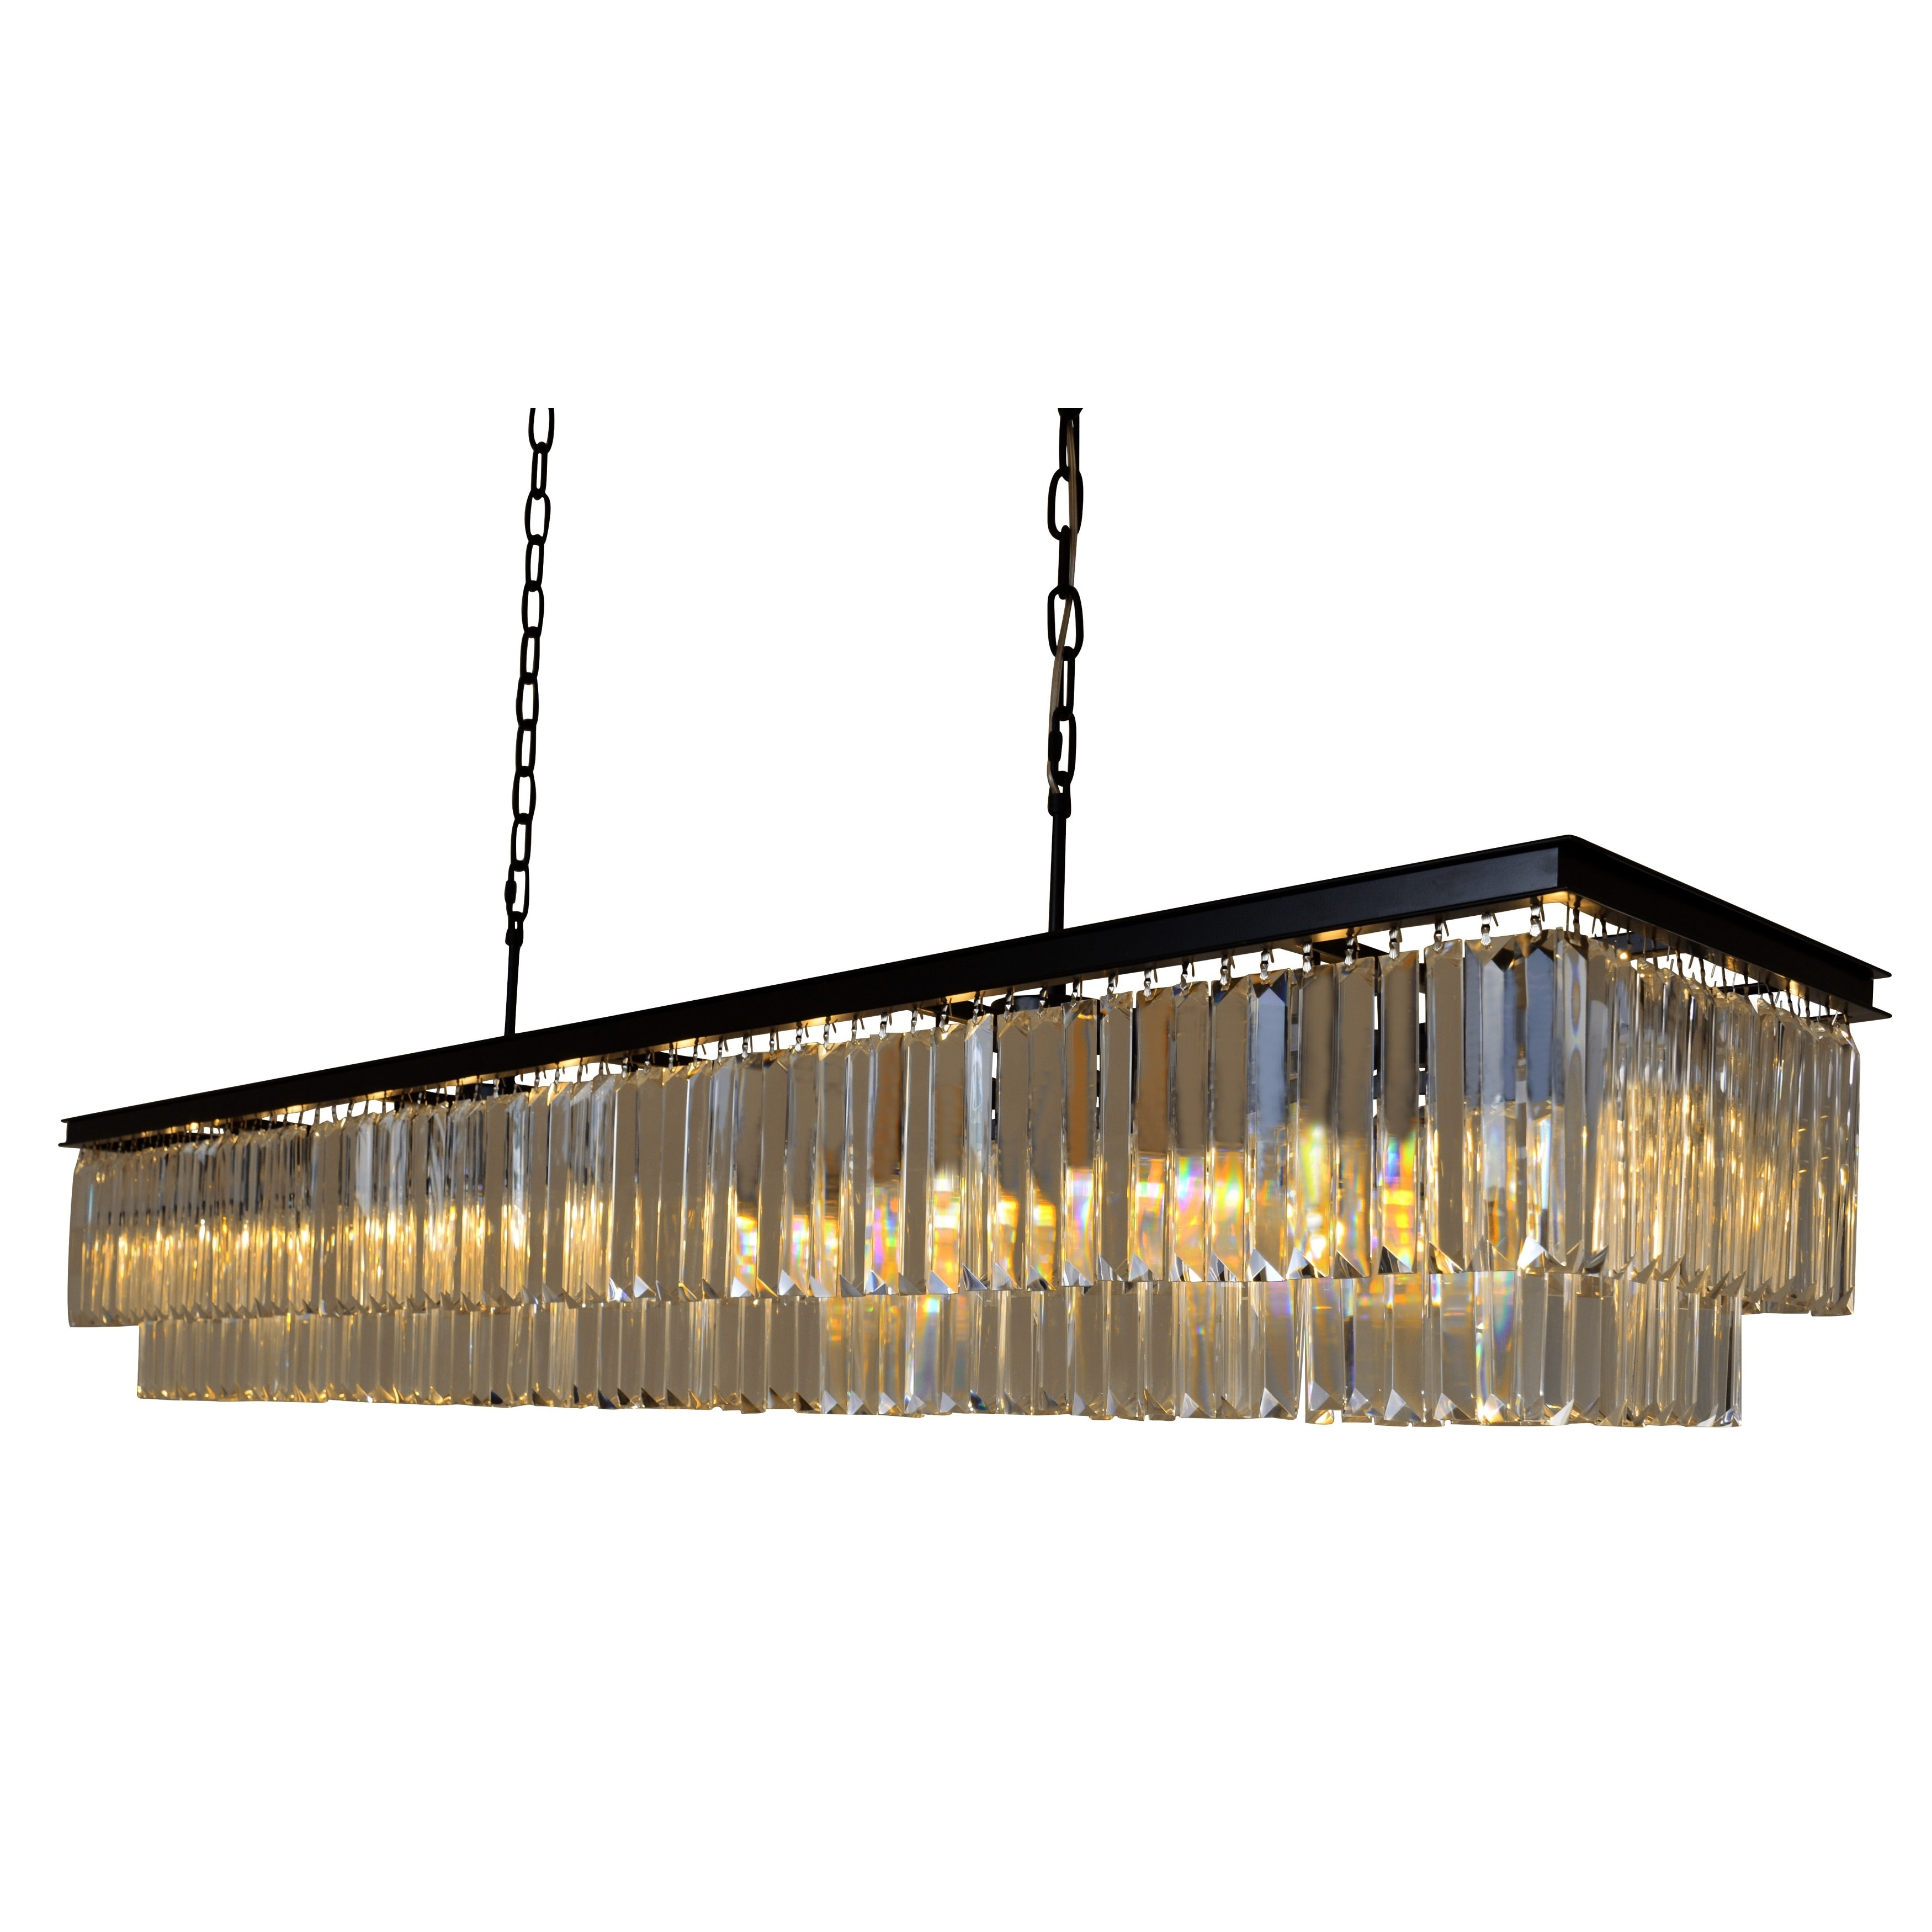 D Angelo 60 Inch Wrought Iron Rectangular Fringe Crystal Chandelier On Free Today Com 13180843